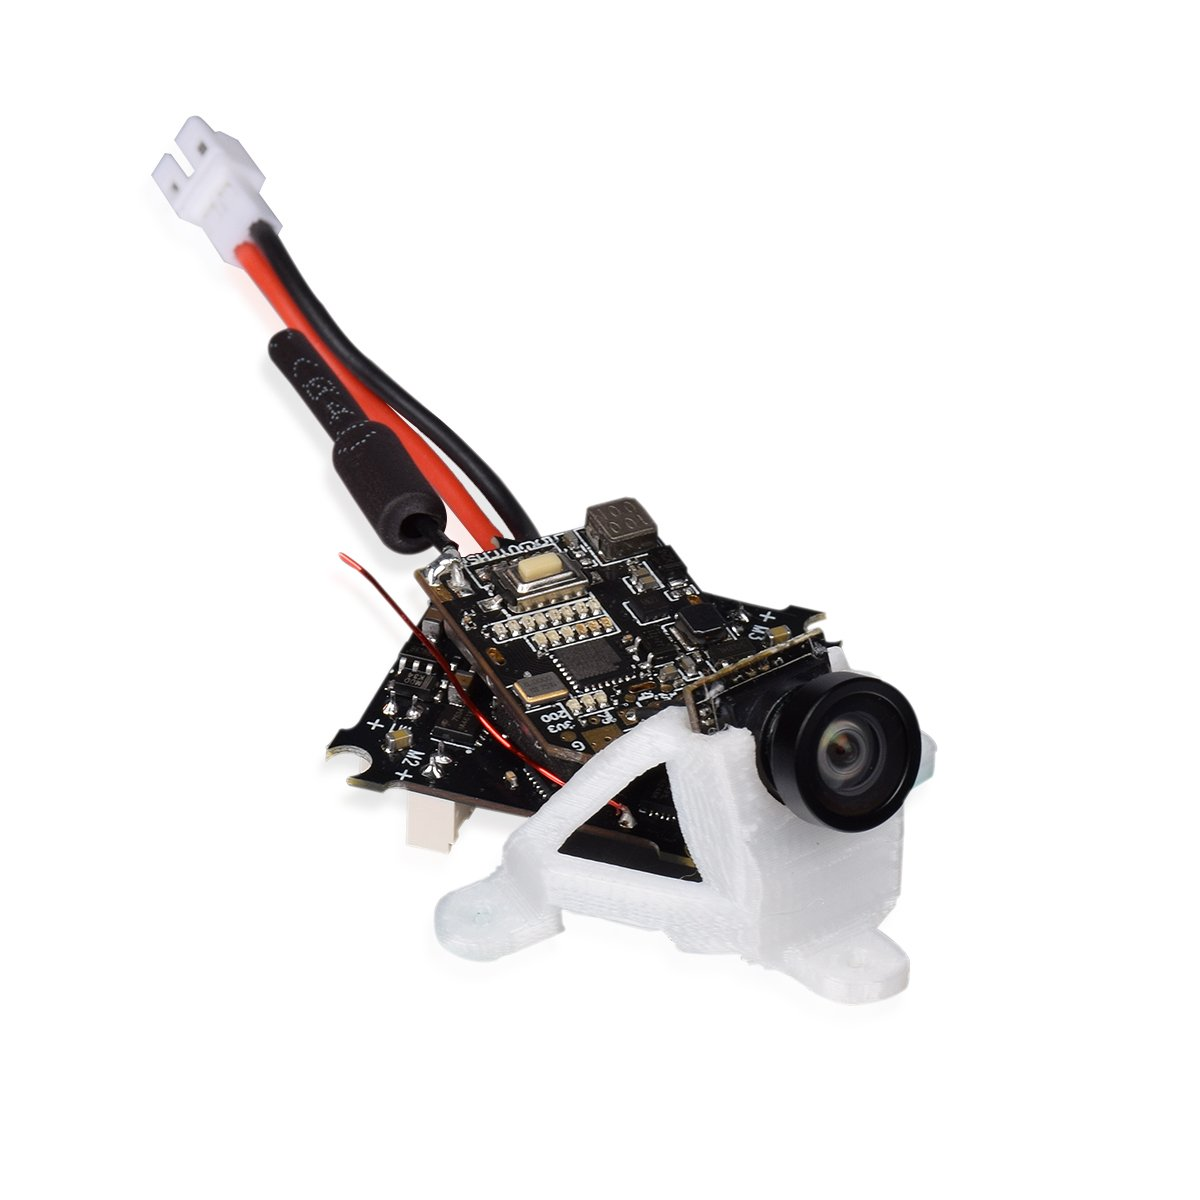 Beta FPV F4 Cube Brushed Flight Controller+SFHSS RX+OSD